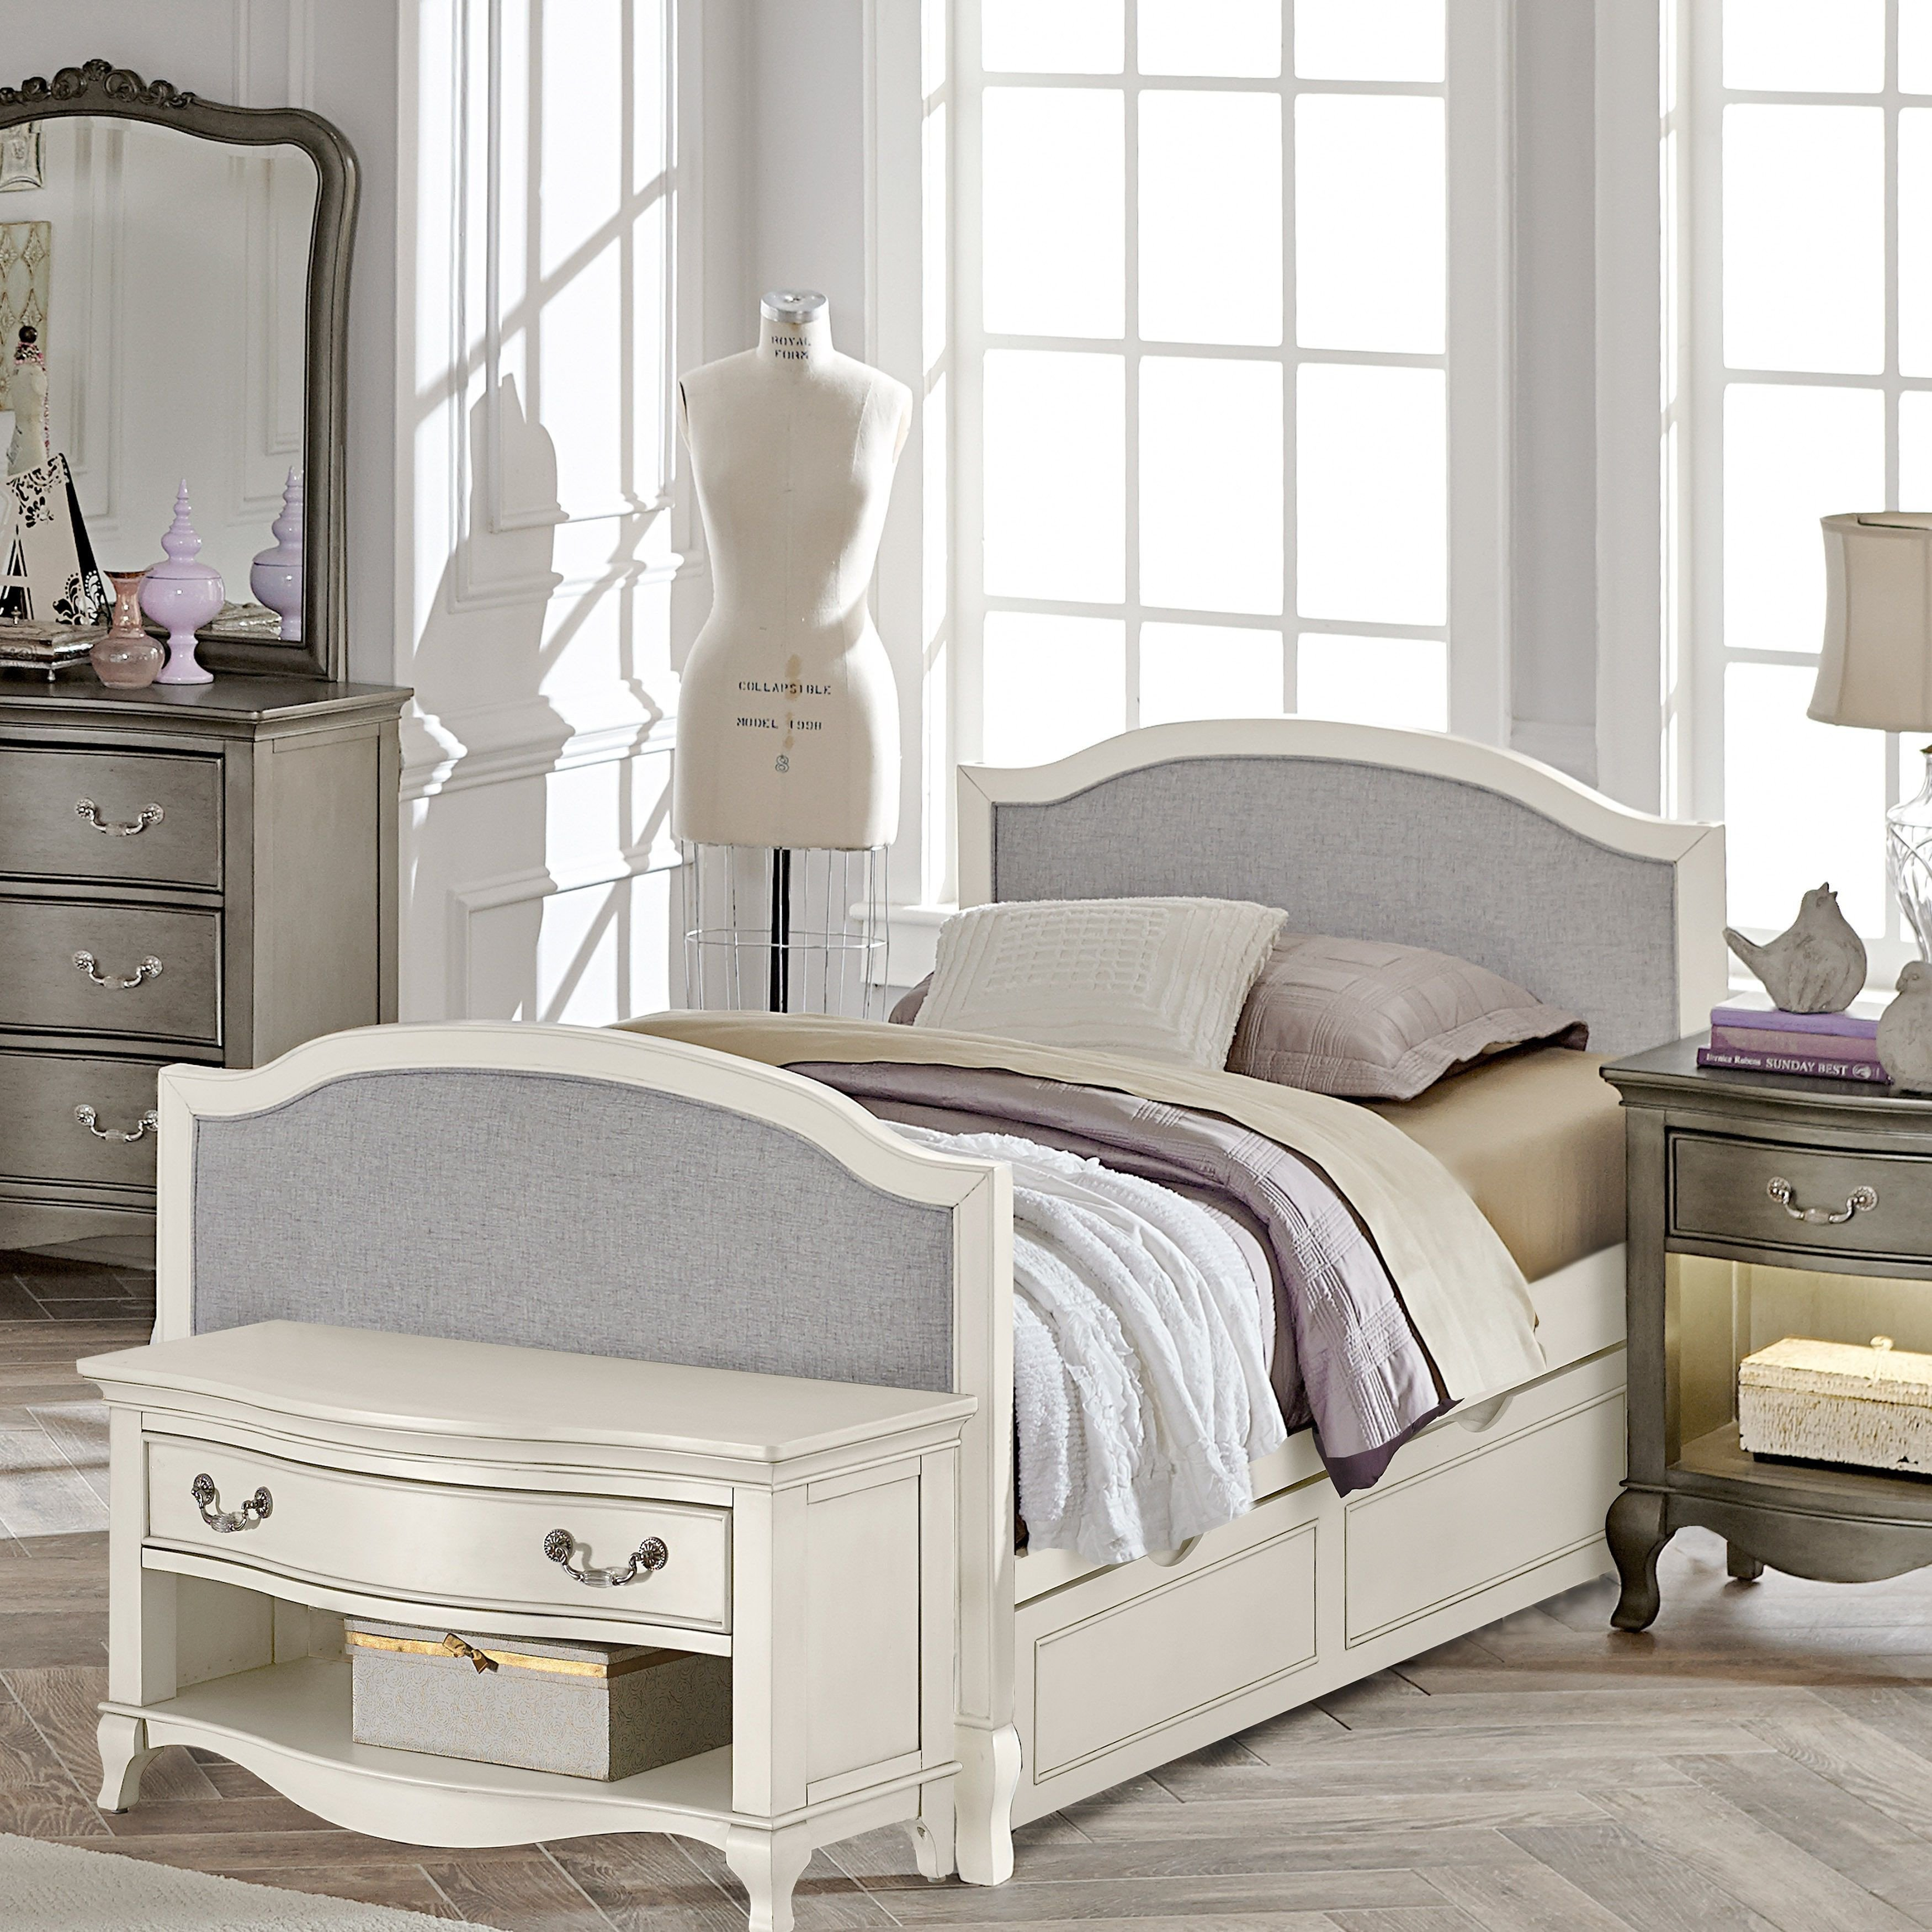 White Twin Bedroom Set Unique Kensington Victoria Antique White Twin Size Upholstered